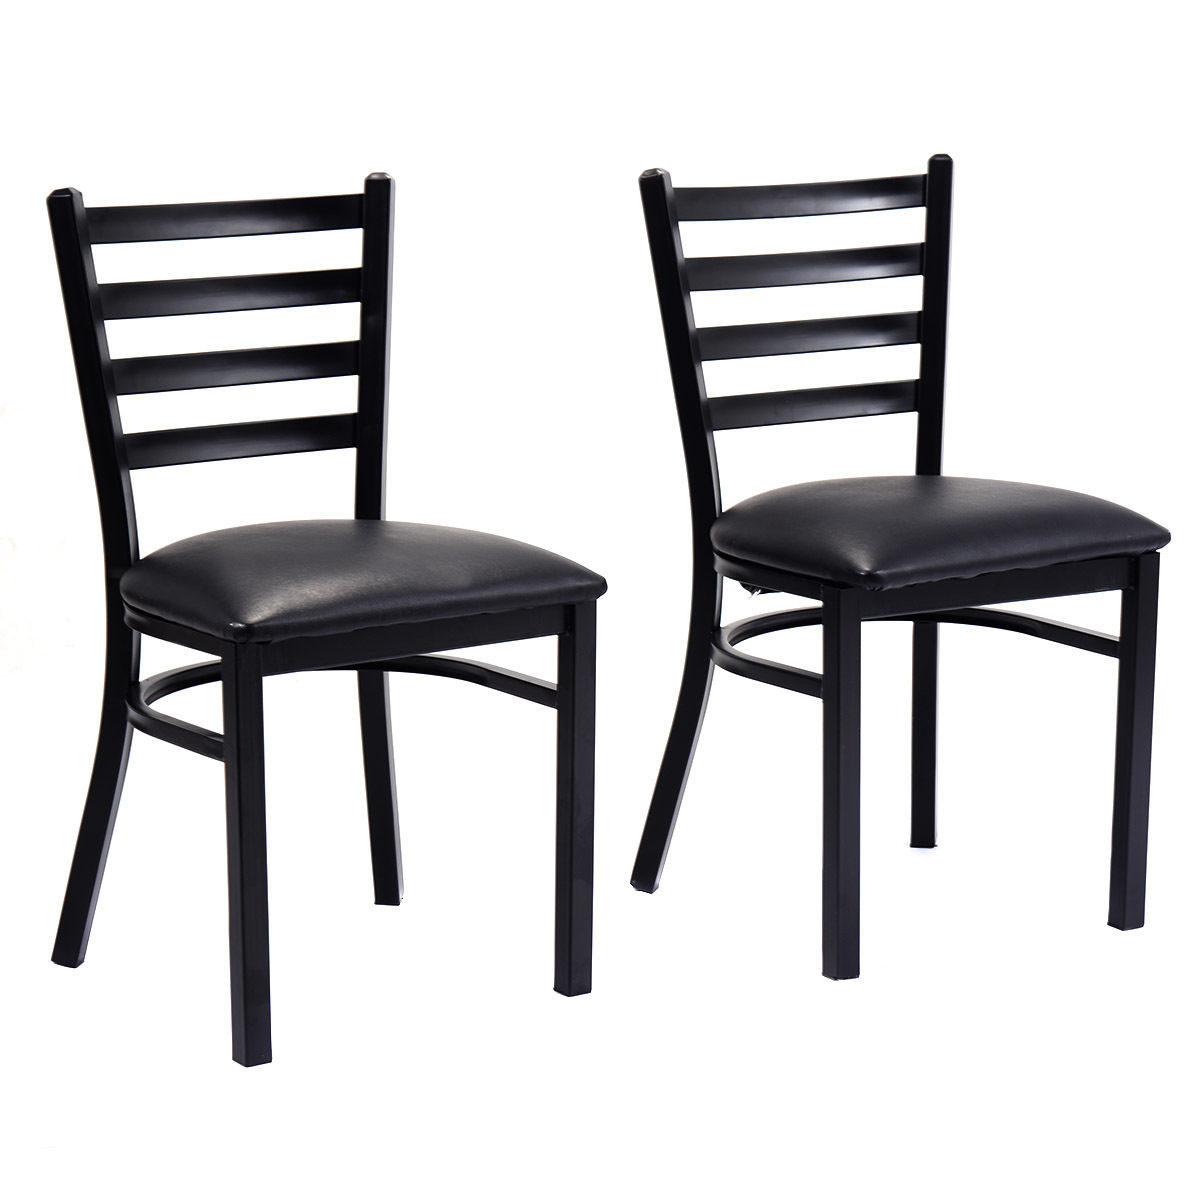 Costway Set of 2 Metal Dining Chairs Upholstered Home Kitchen Side Chair Furniture